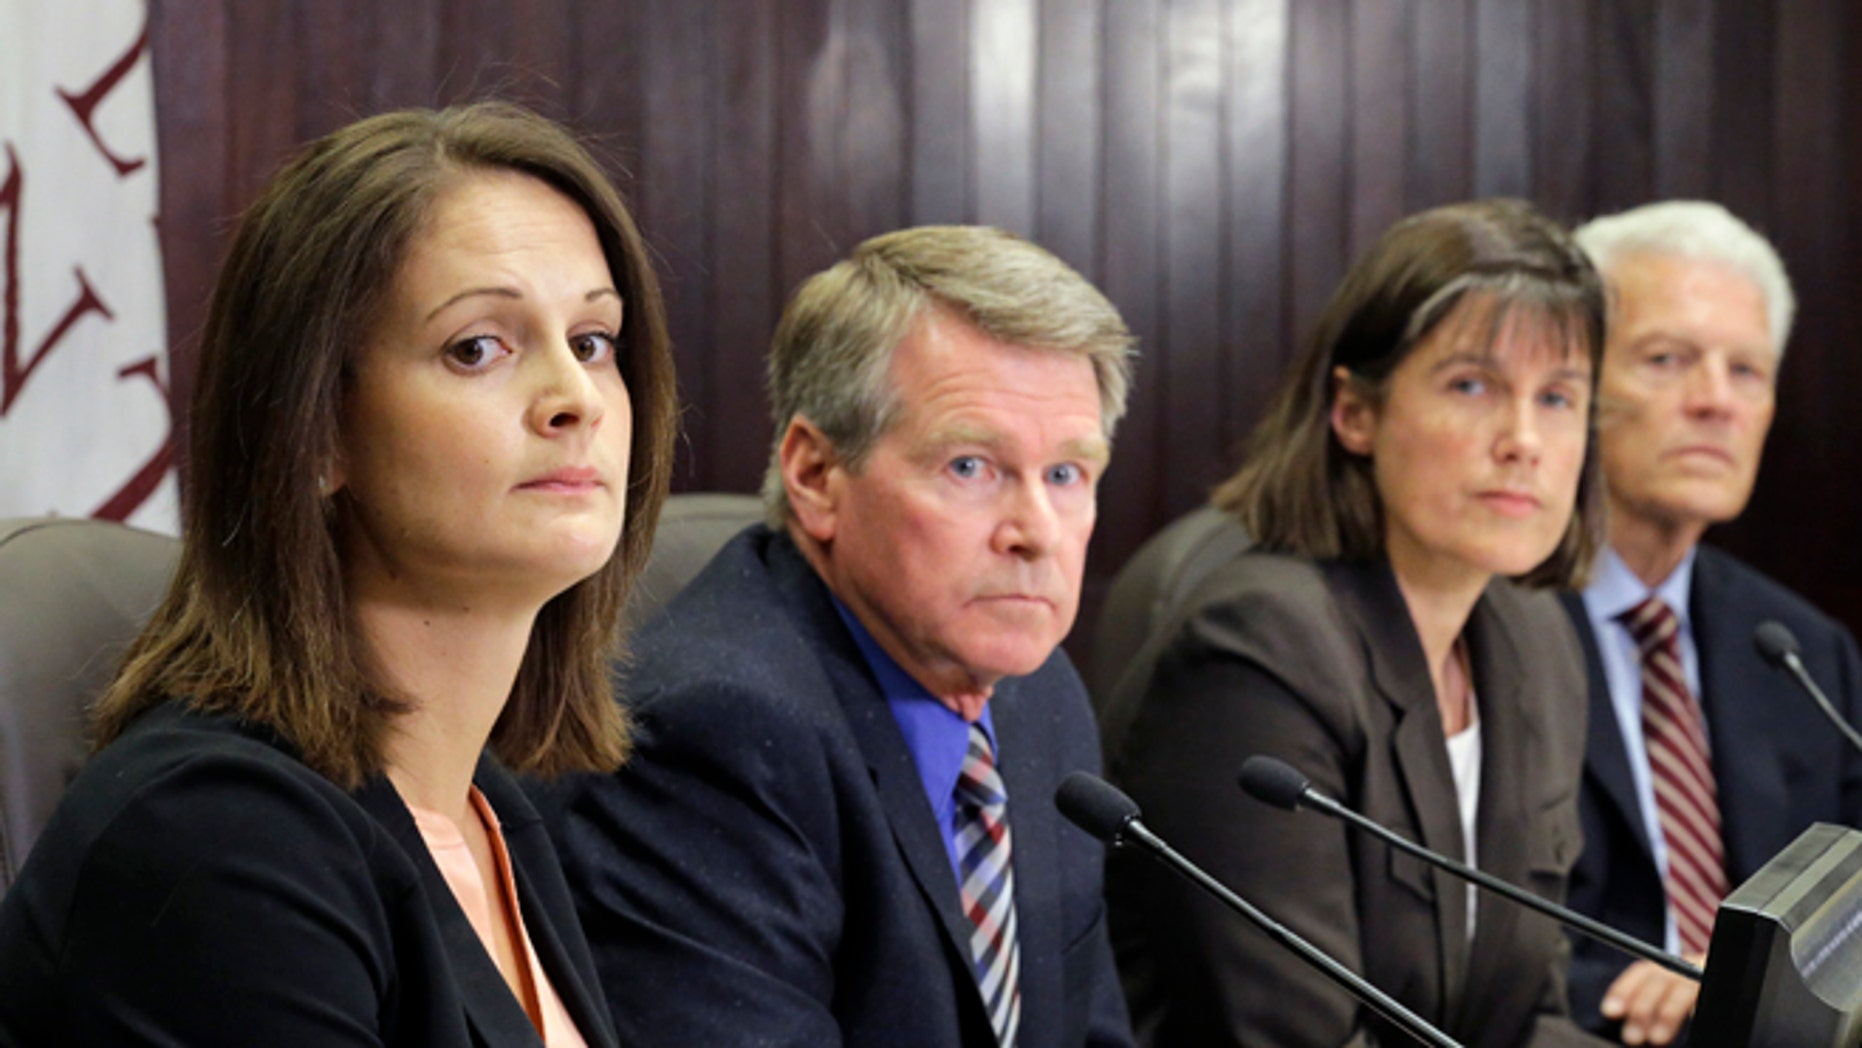 Left to right, Dr. Angela Dunn, deputy state epidemiologist at the Utah Department of Health; Gary Edwards, executive director, Salt Lake County Health Department; Dr. J. Erin Staples, Medical Epidemiologist, Centers for Disease Control and Prevention,and Dr. Edward Clark Associate Vice President Clinical Affairs University of Utah speak during a news conference Monday, July 18, 2016, in Salt Lake City. A person who cared for a Zika-infected relative in Utah also got the virus, but exactly how it was transmitted is a medical mystery, health officials announced Monday. (AP Photo/Rick Bowmer)